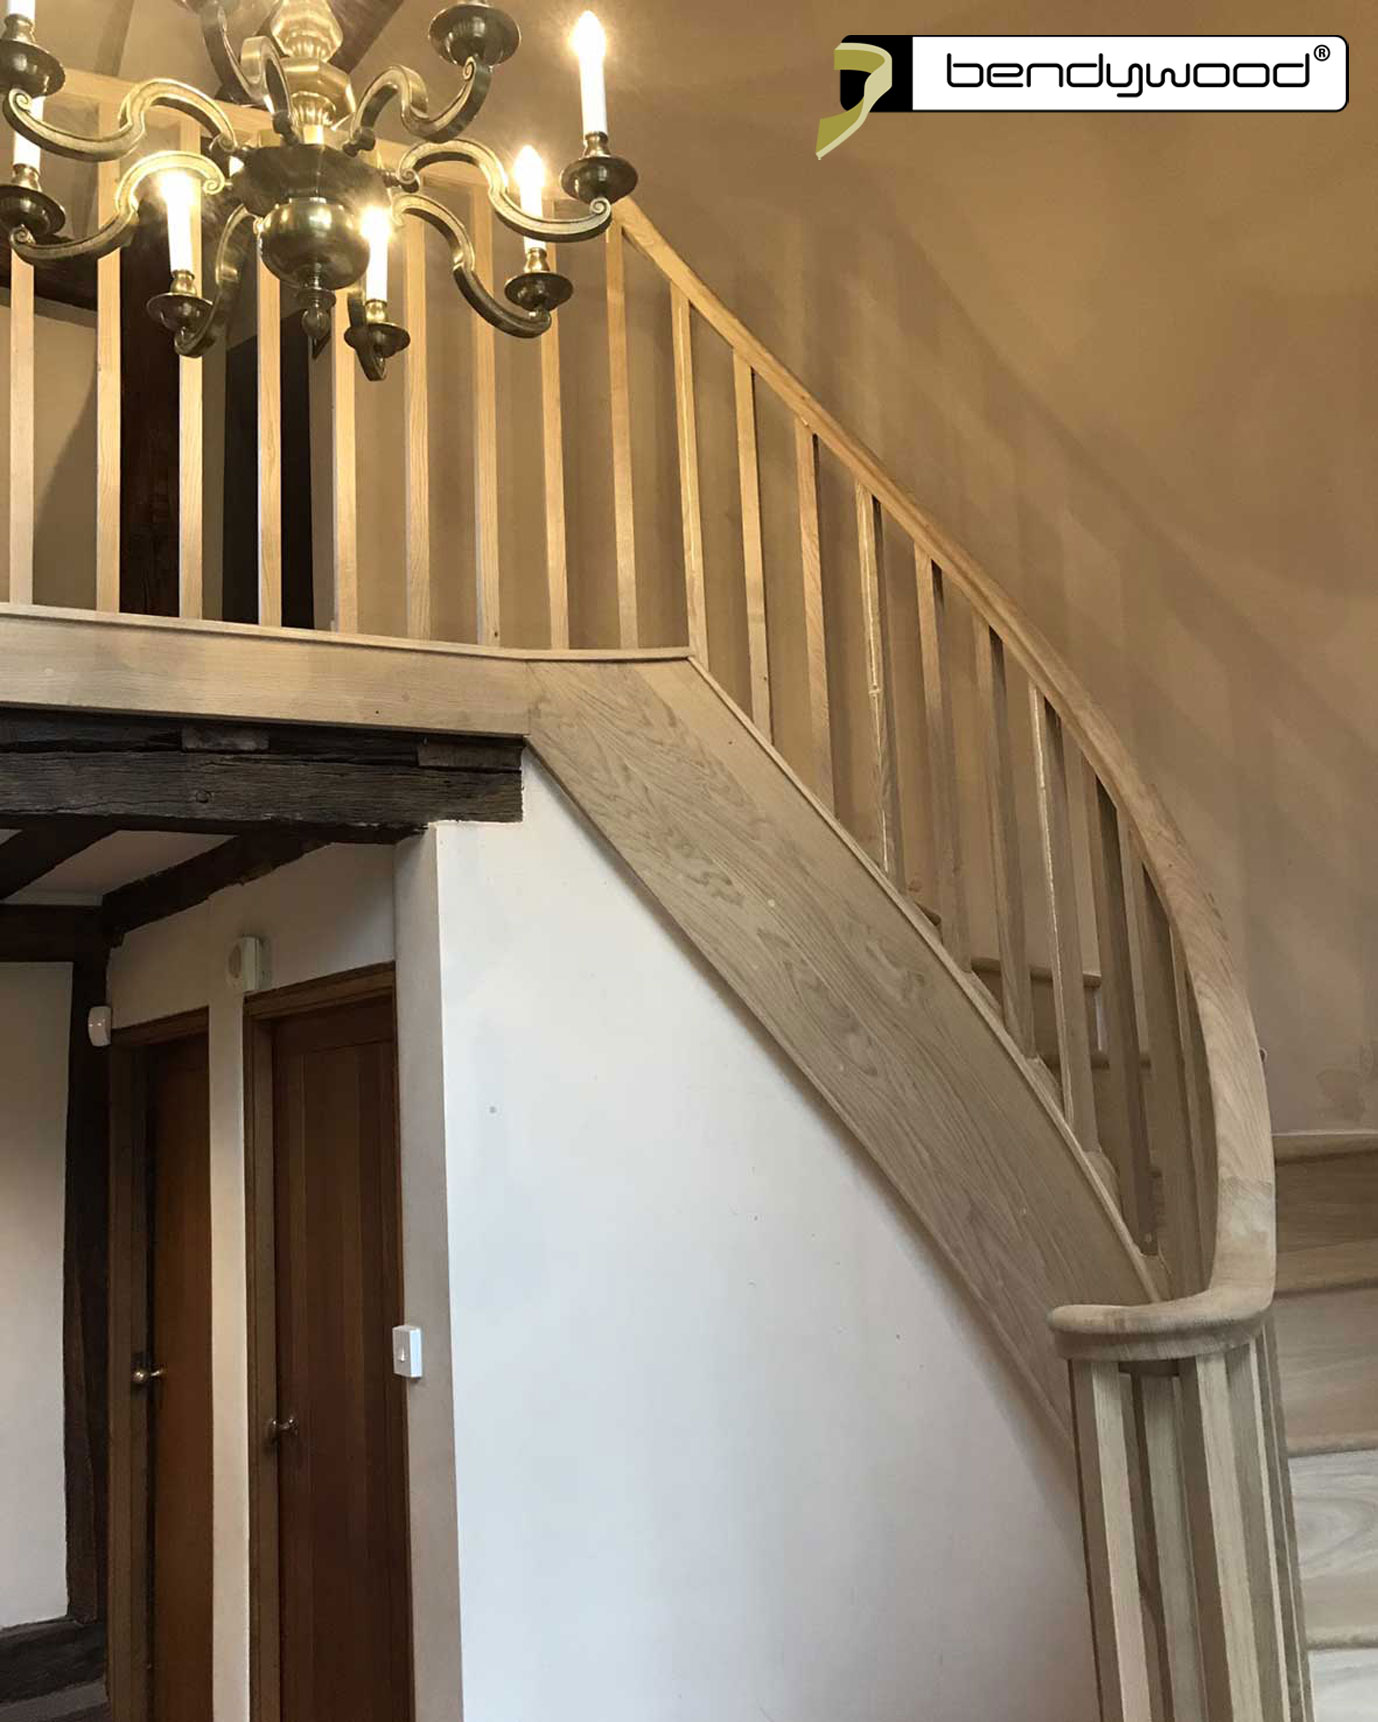 Customized staircase with banister in Bendywood®-oak.